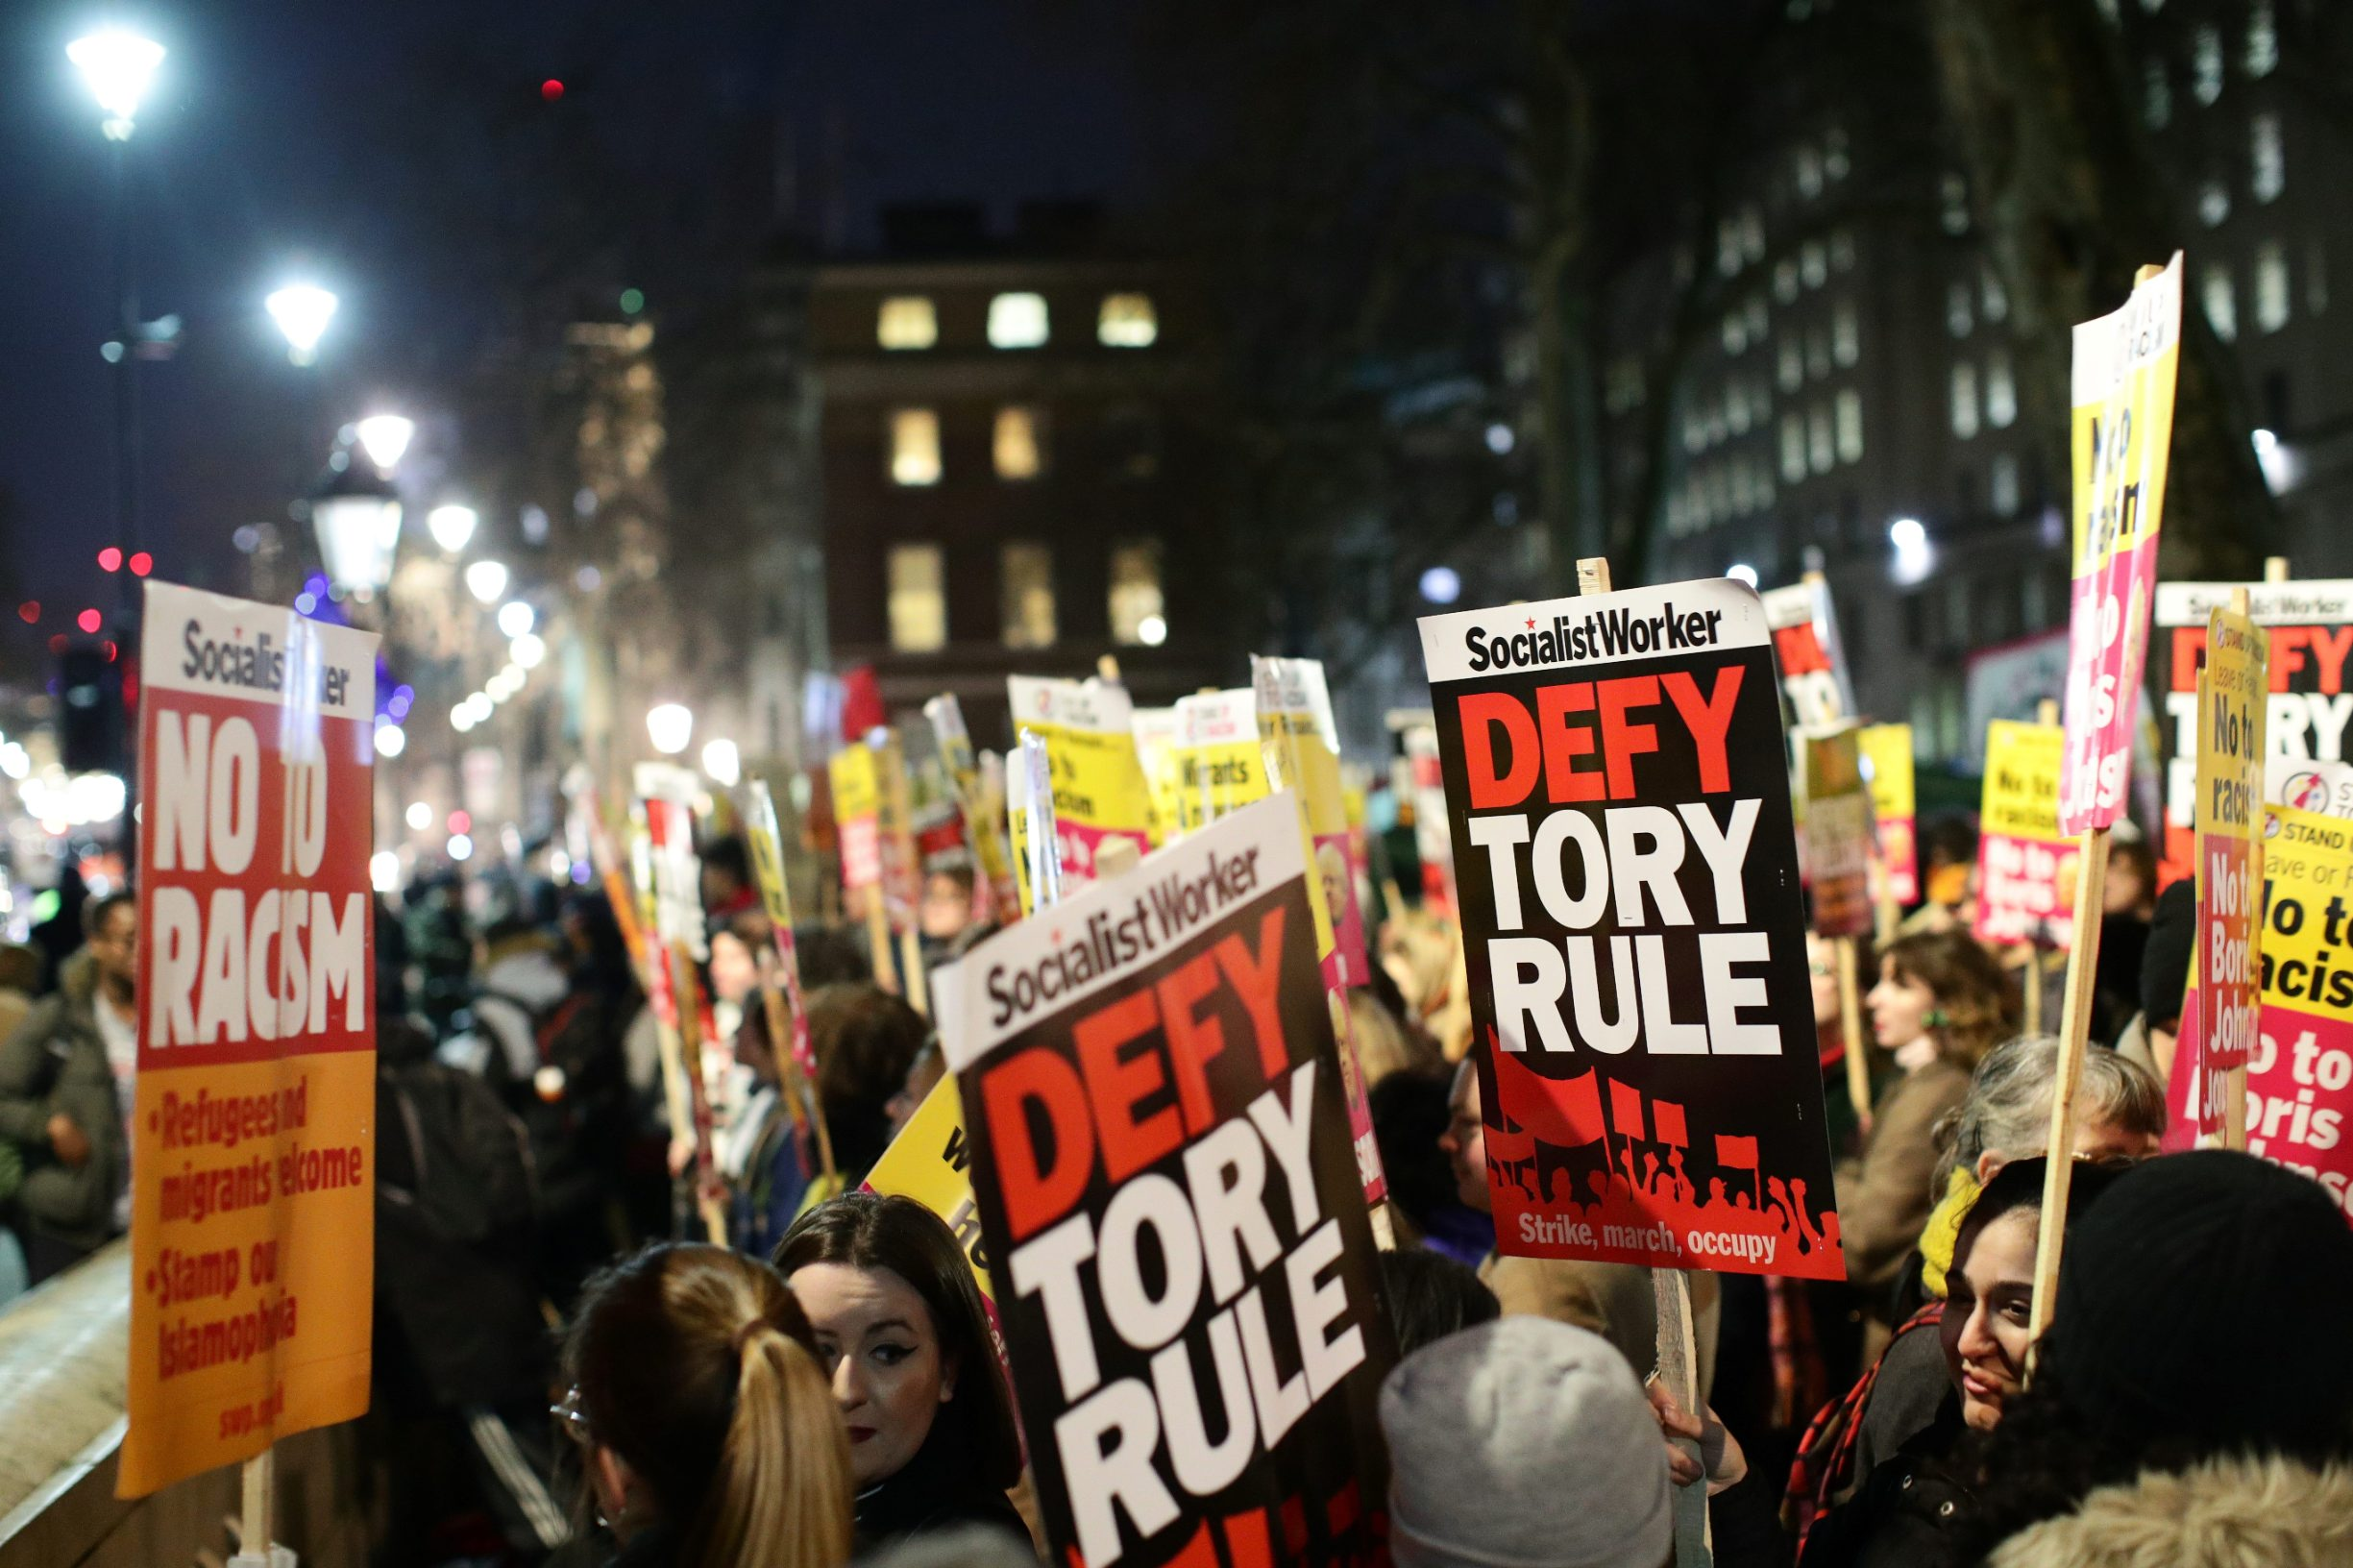 2019-12-13T180013Z_1178147030_RC2IUD9QMTPY_RTRMADP_3_BRITAIN-ELECTION-PROTESTS